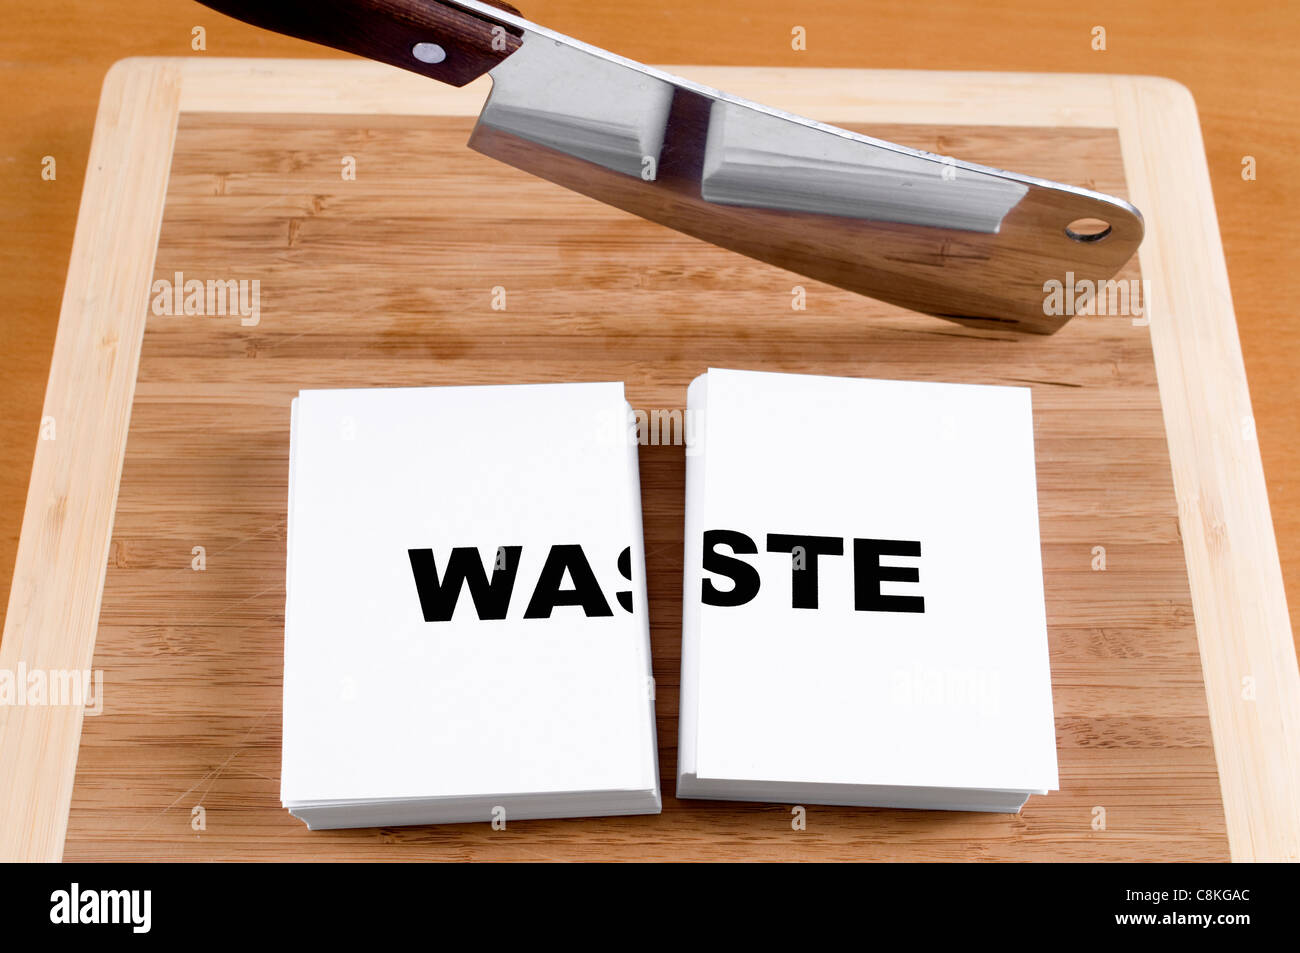 Cutting Waste with a Cleaver and Cutting Board. - Stock Image